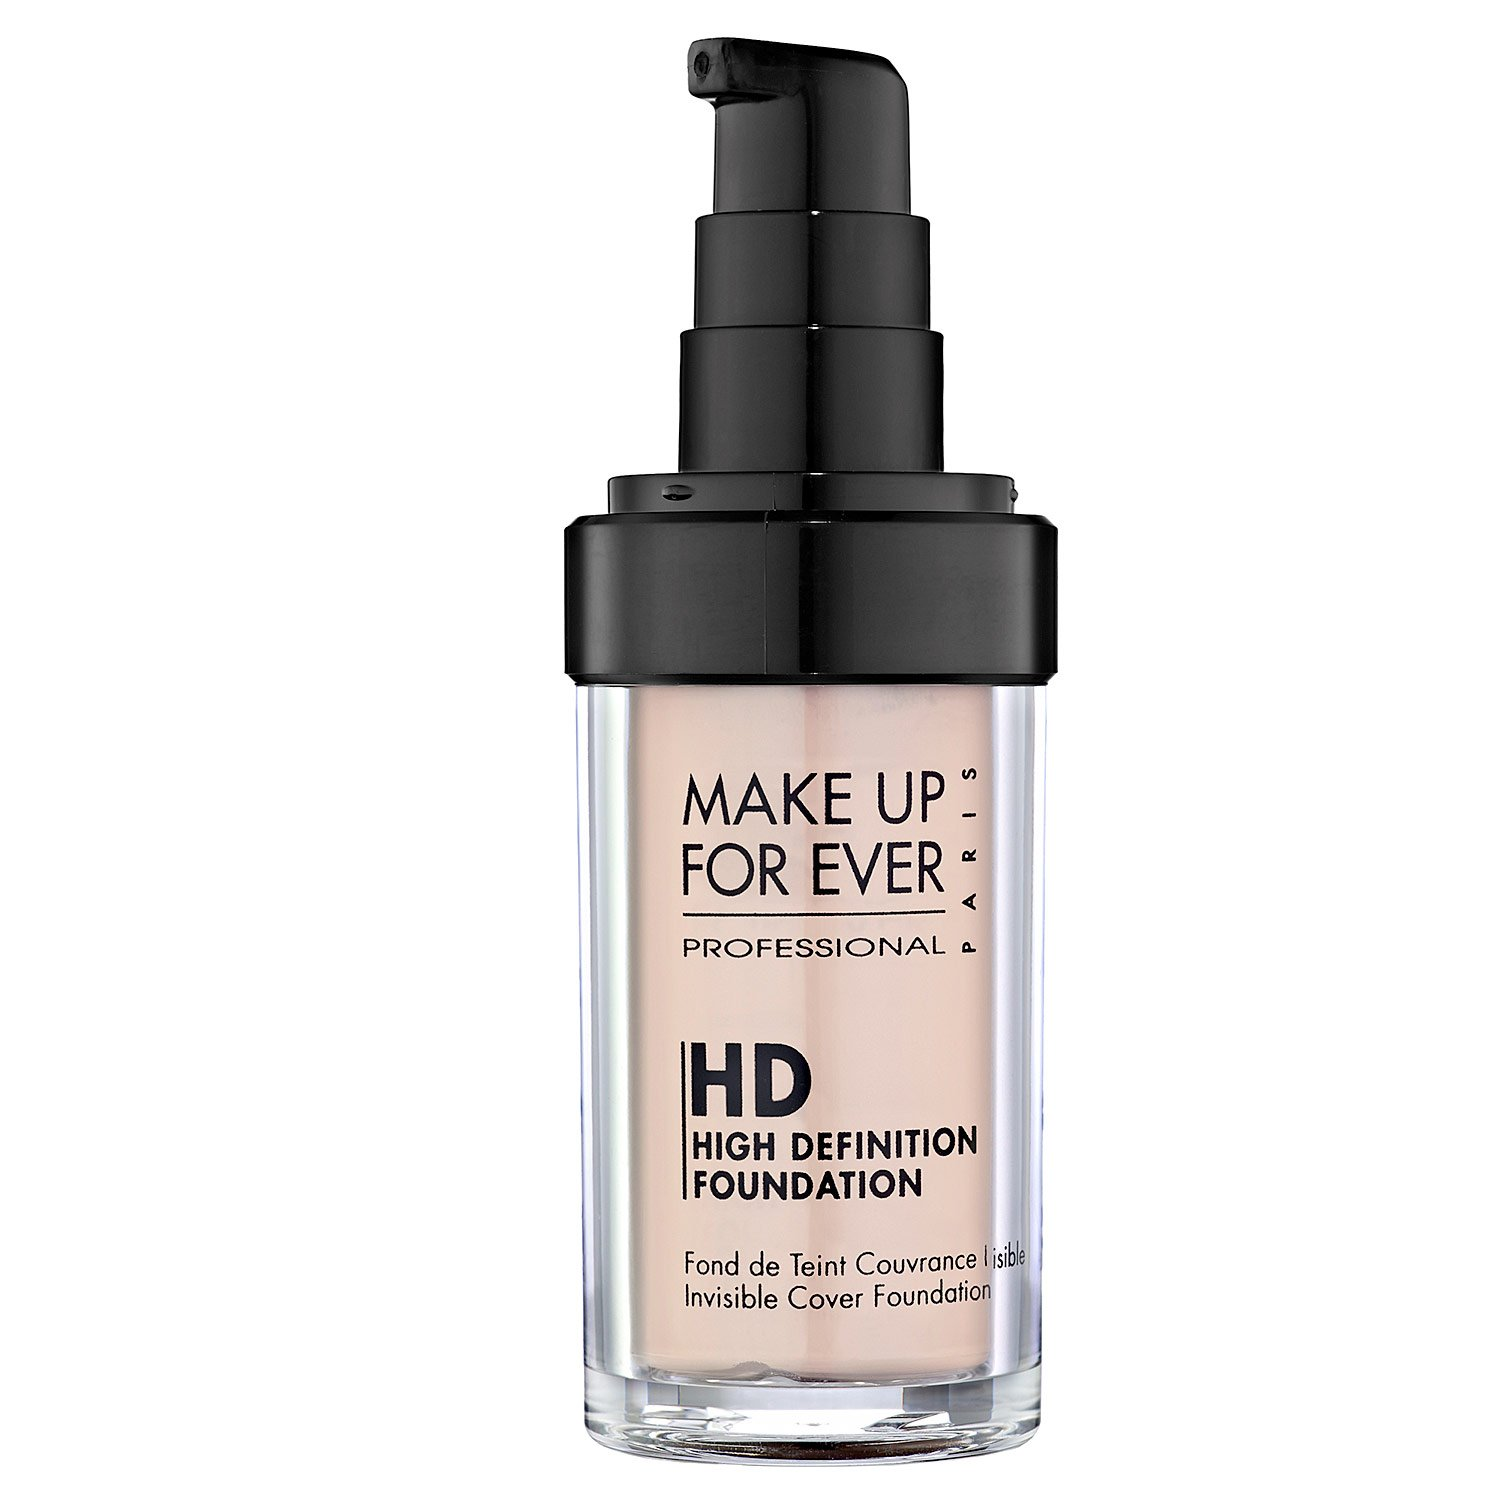 B001D0G2F8 MAKE UP FOR EVER HD Invisible Cover Foundation 125 Sand 1.01 oz 71FGUofmNML._SL1500_